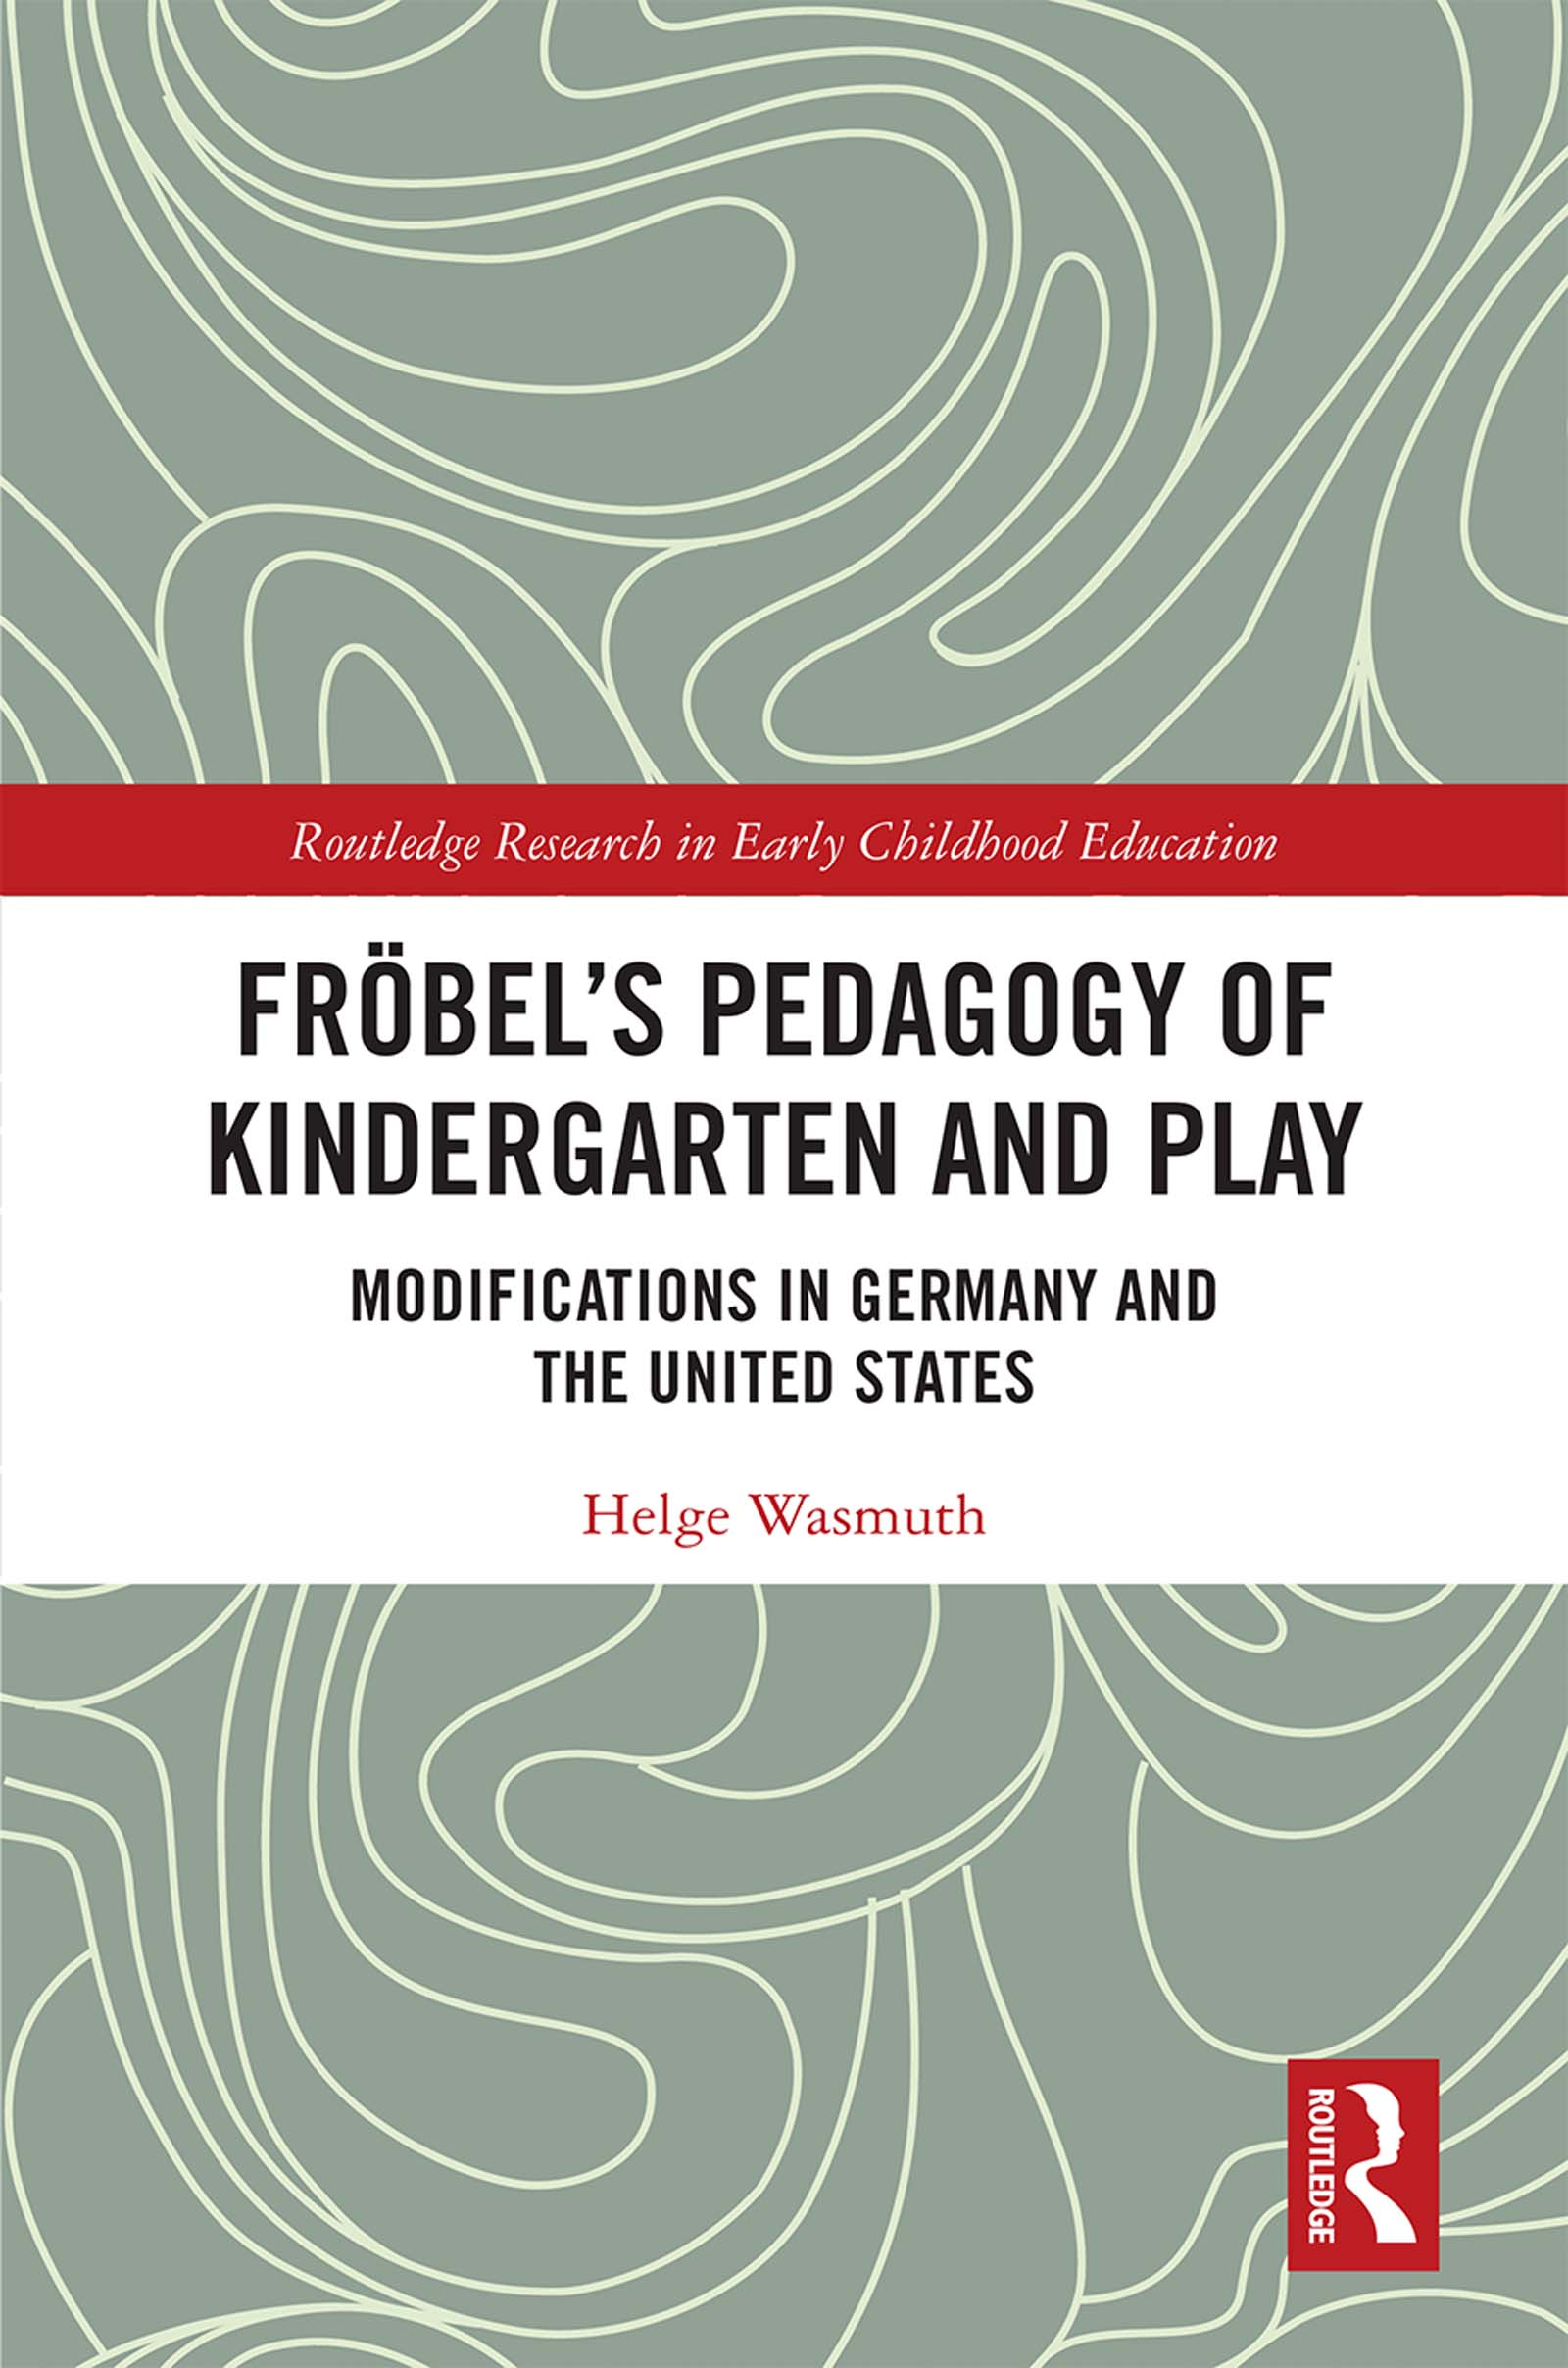 Fröbel's Pedagogy of Kindergarten and Play: Modifications in Germany and the United States book cover